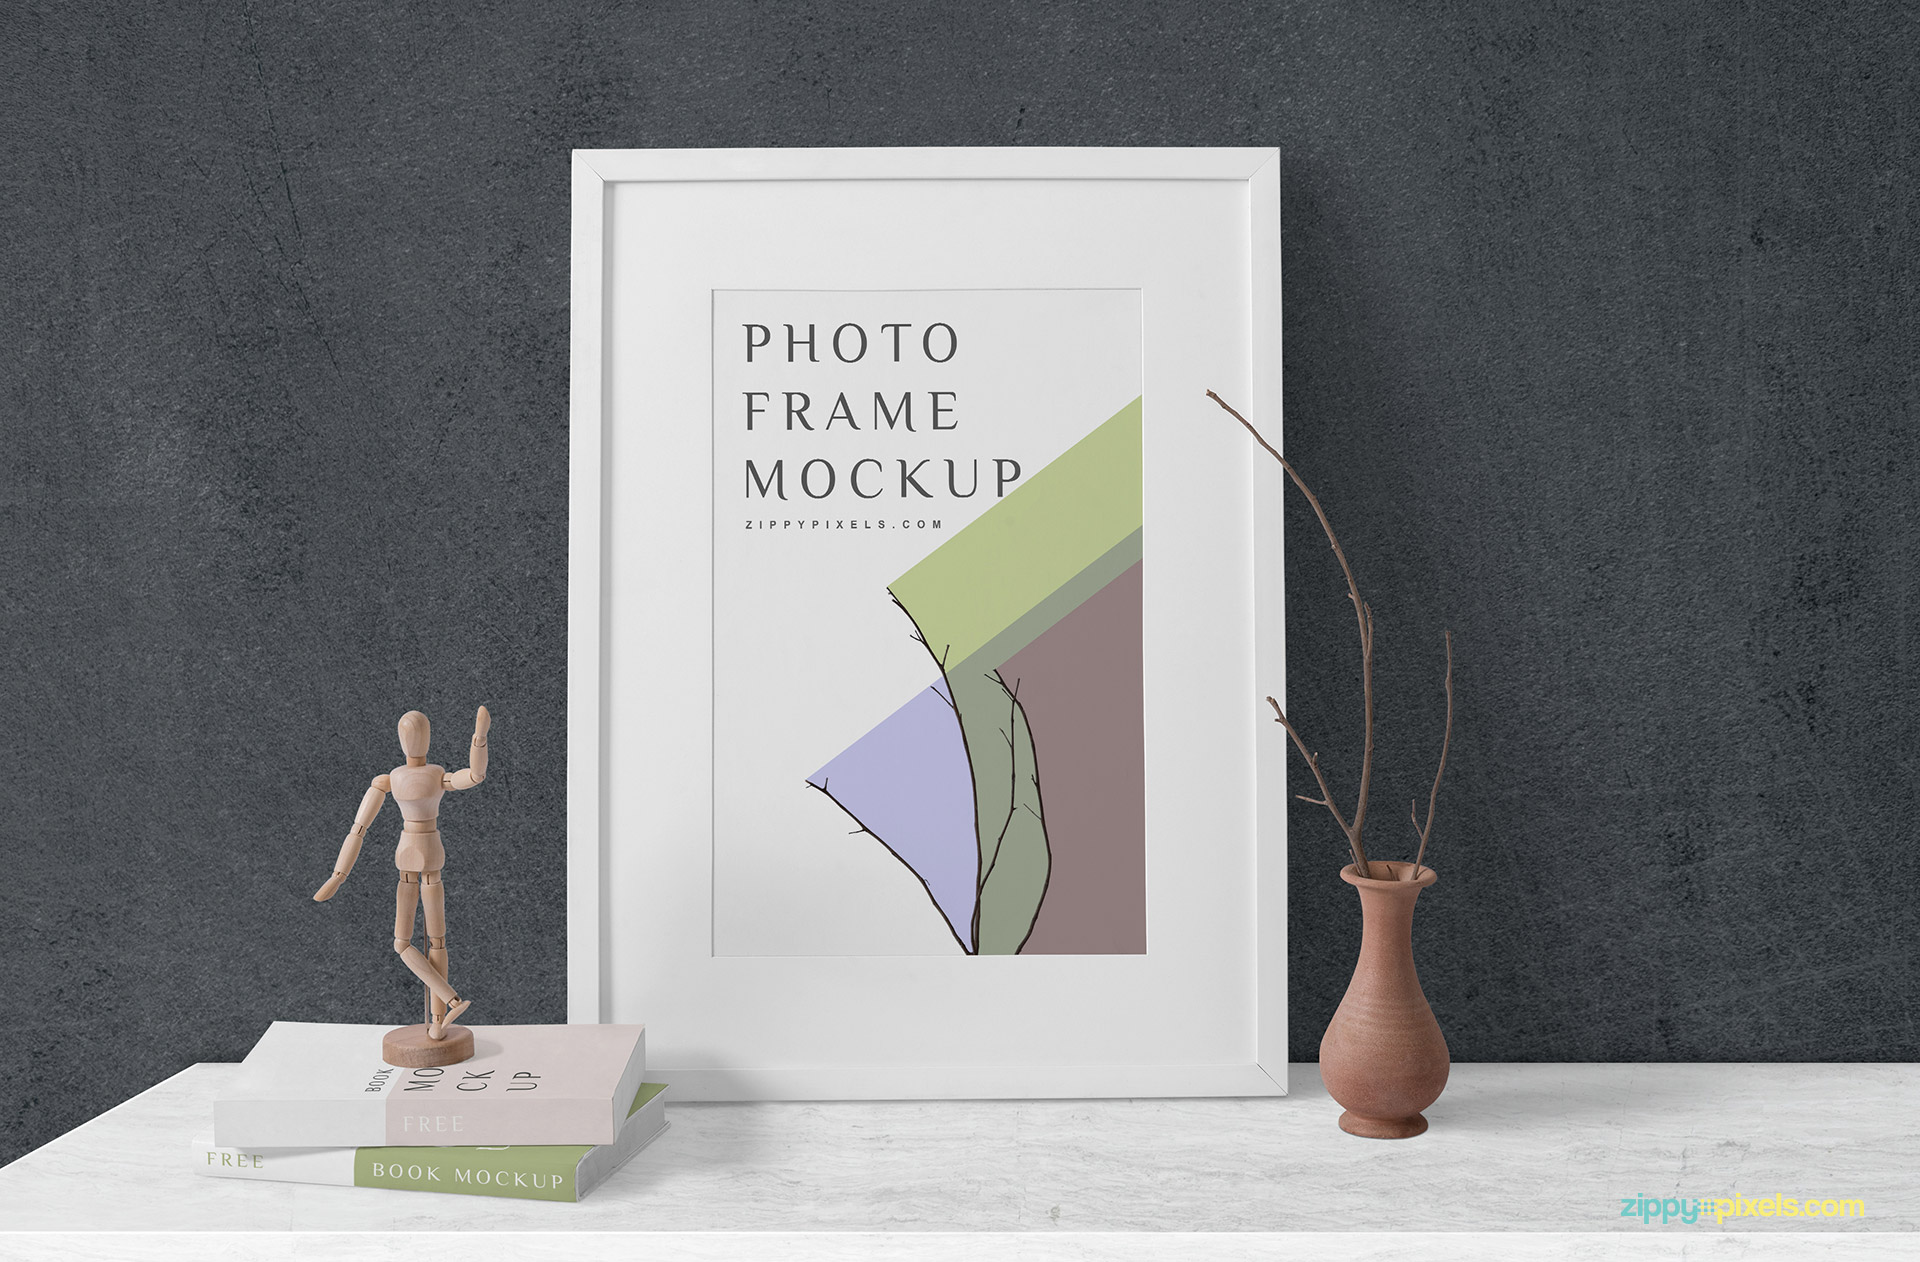 Adjust the background of the free frame mockup as per your needs.